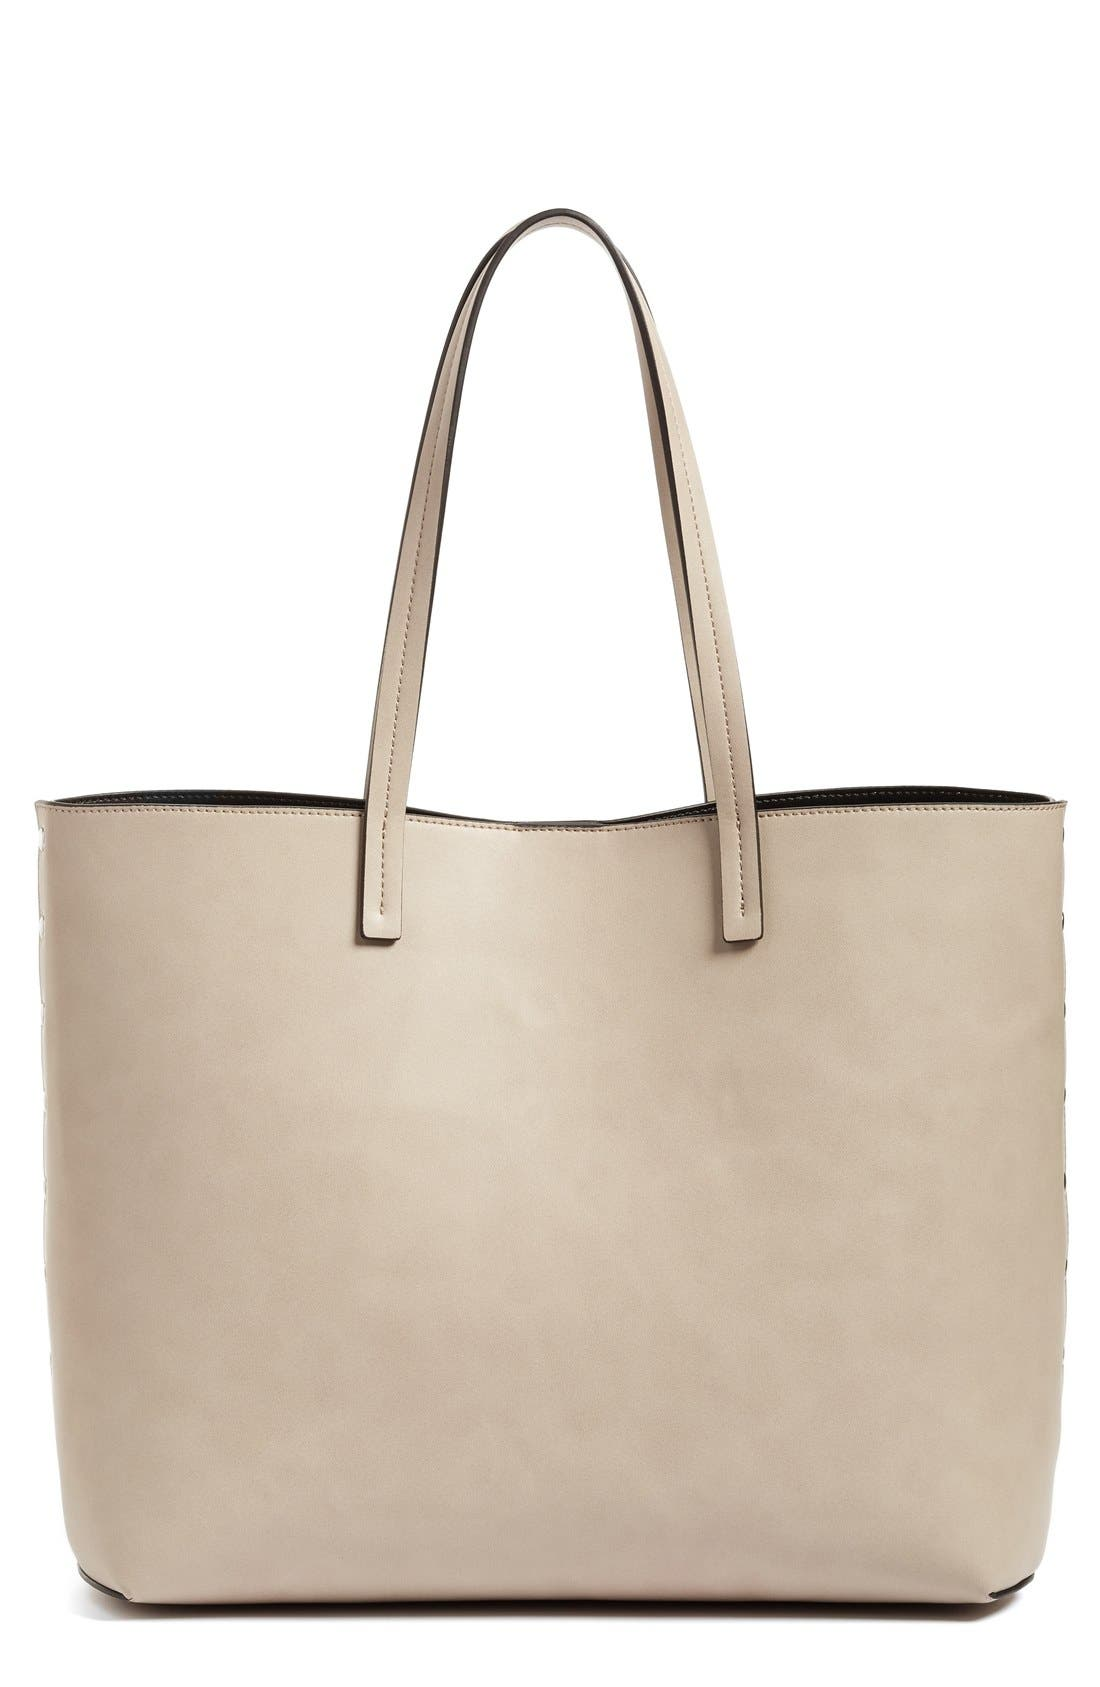 Alternate Image 1 Selected - Chelsea28 Olivia Faux Leather Tote